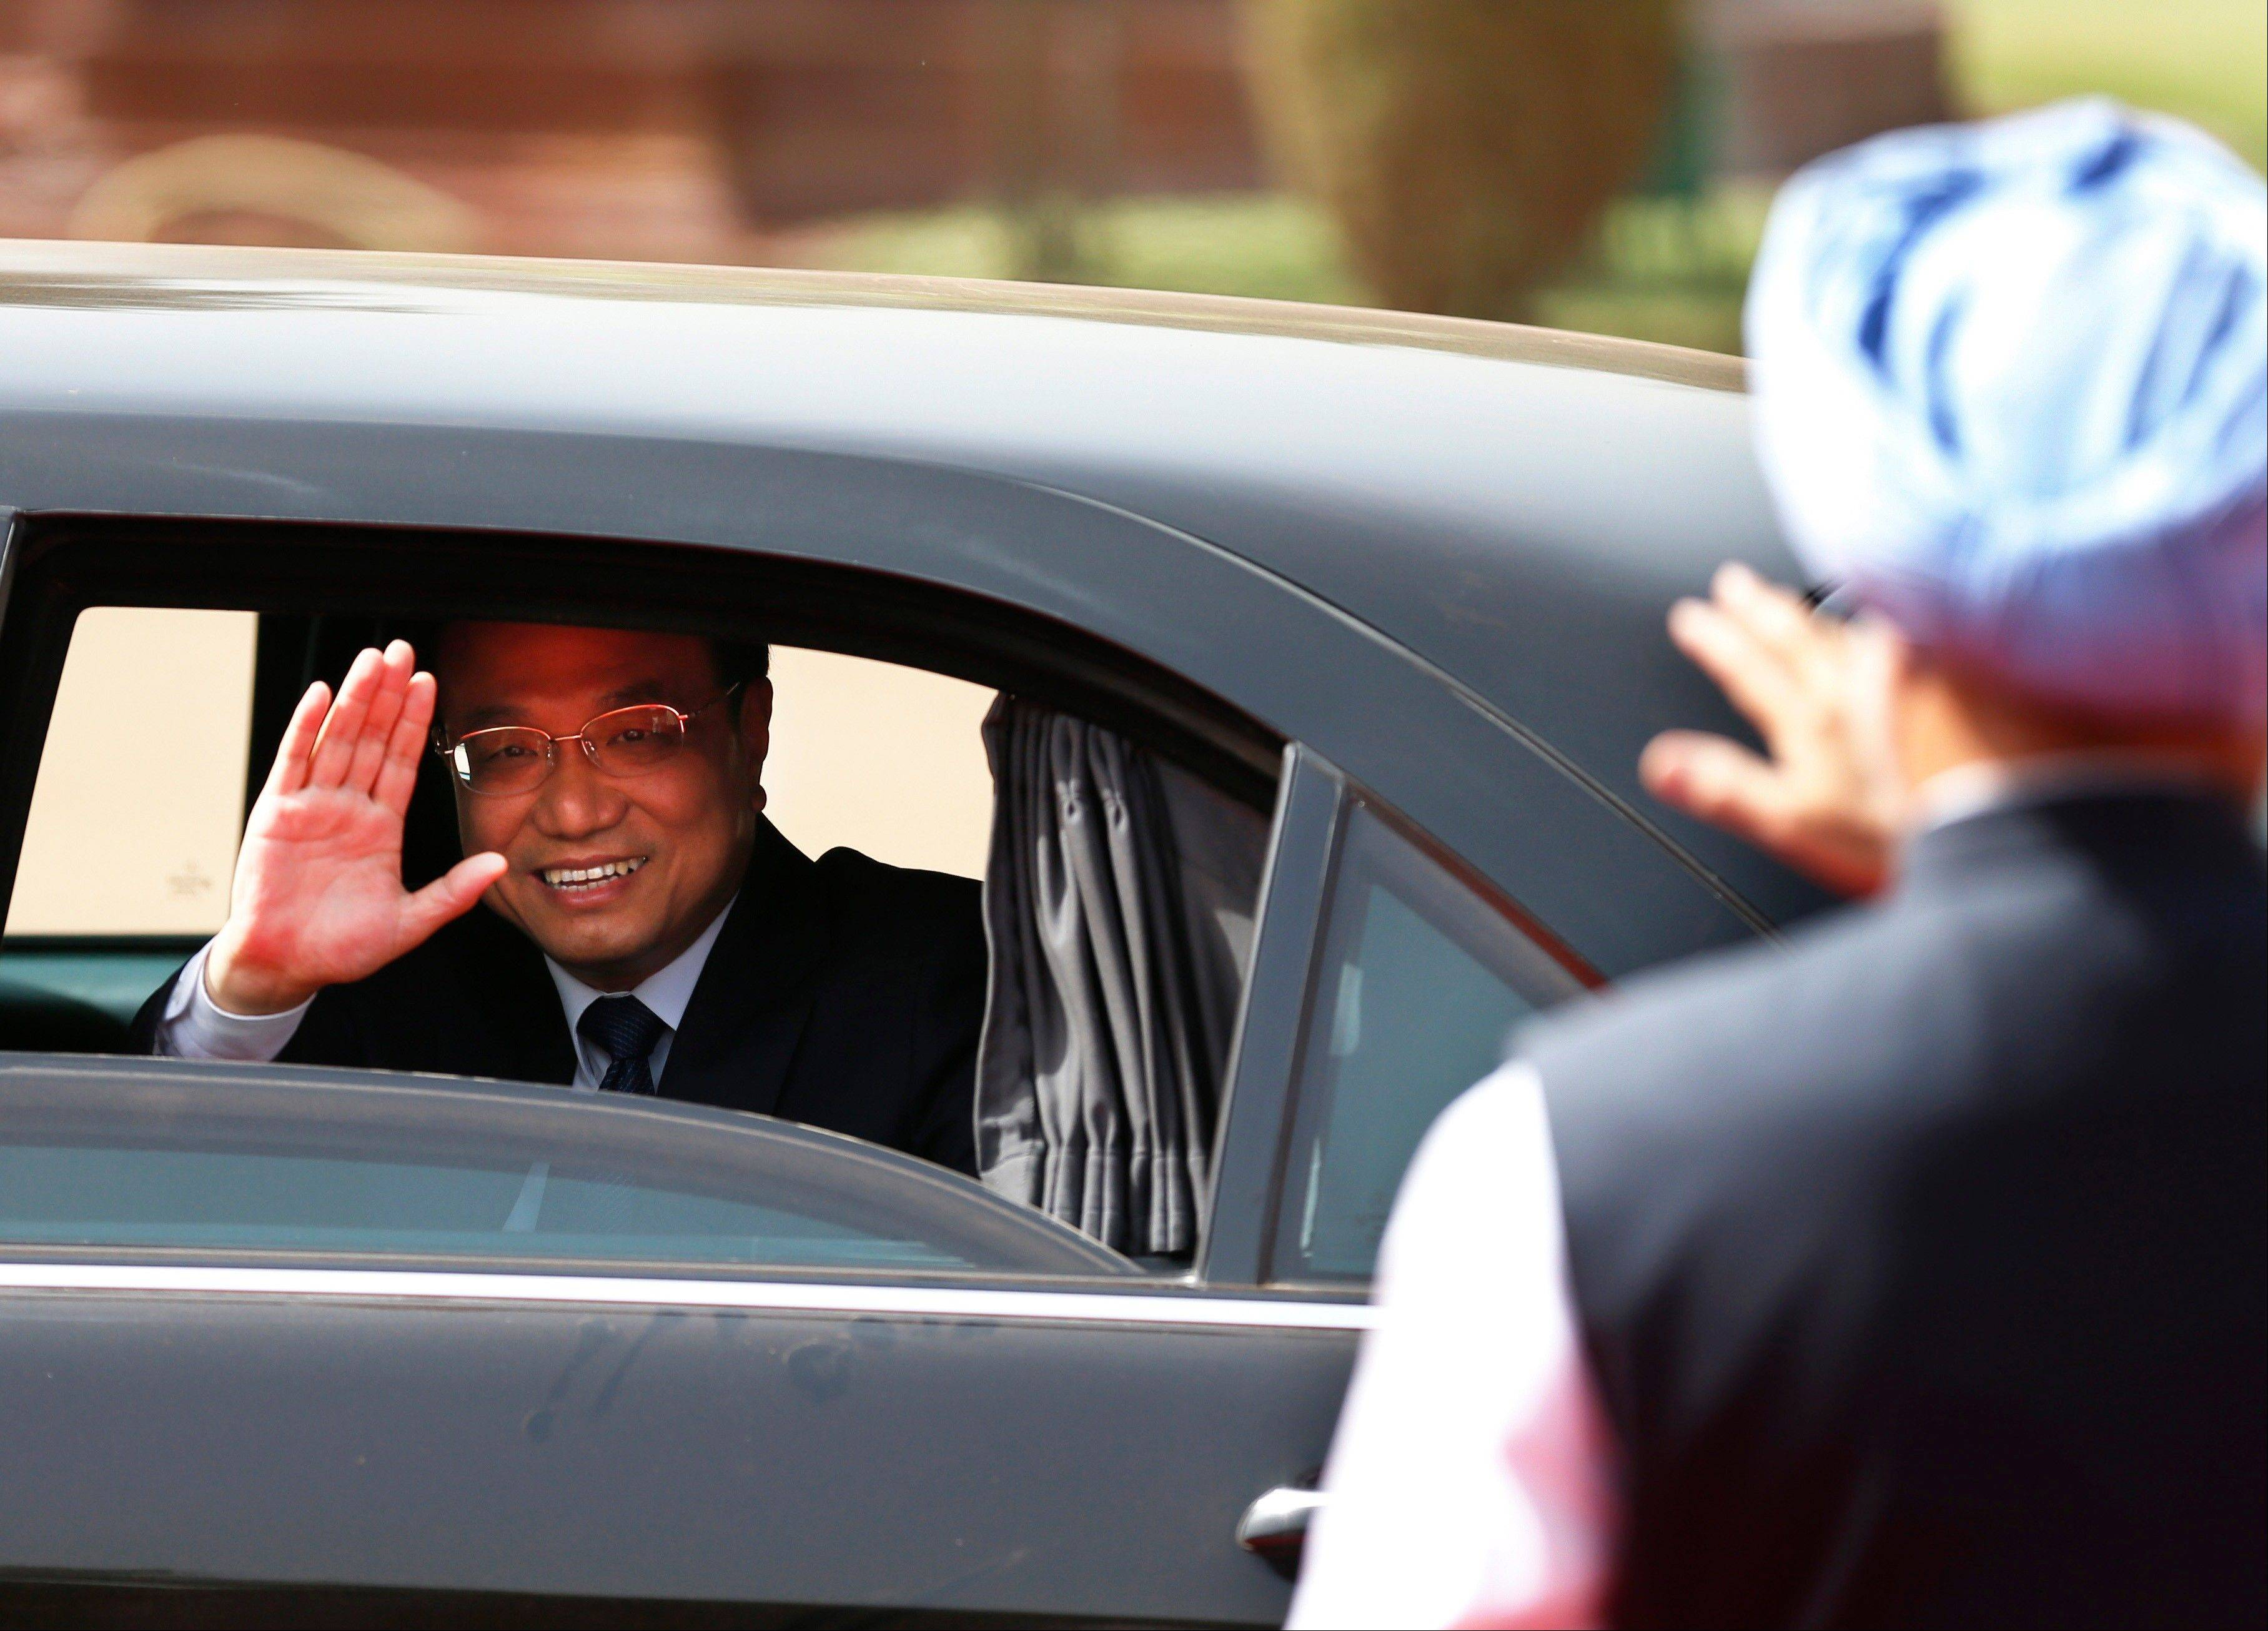 Chinese Premier Li Keqiang waves to Indian Prime Minister Manmohan Singh, right, as he leaves the Indian Presidential Palace after his ceremonial reception in New Delhi, India, Monday. Just weeks after a tense border standoff, Li visited India on his first foreign three-day trip as the neighboring giants look to speed up efforts to settle a decades-old boundary dispute and boost economic ties.